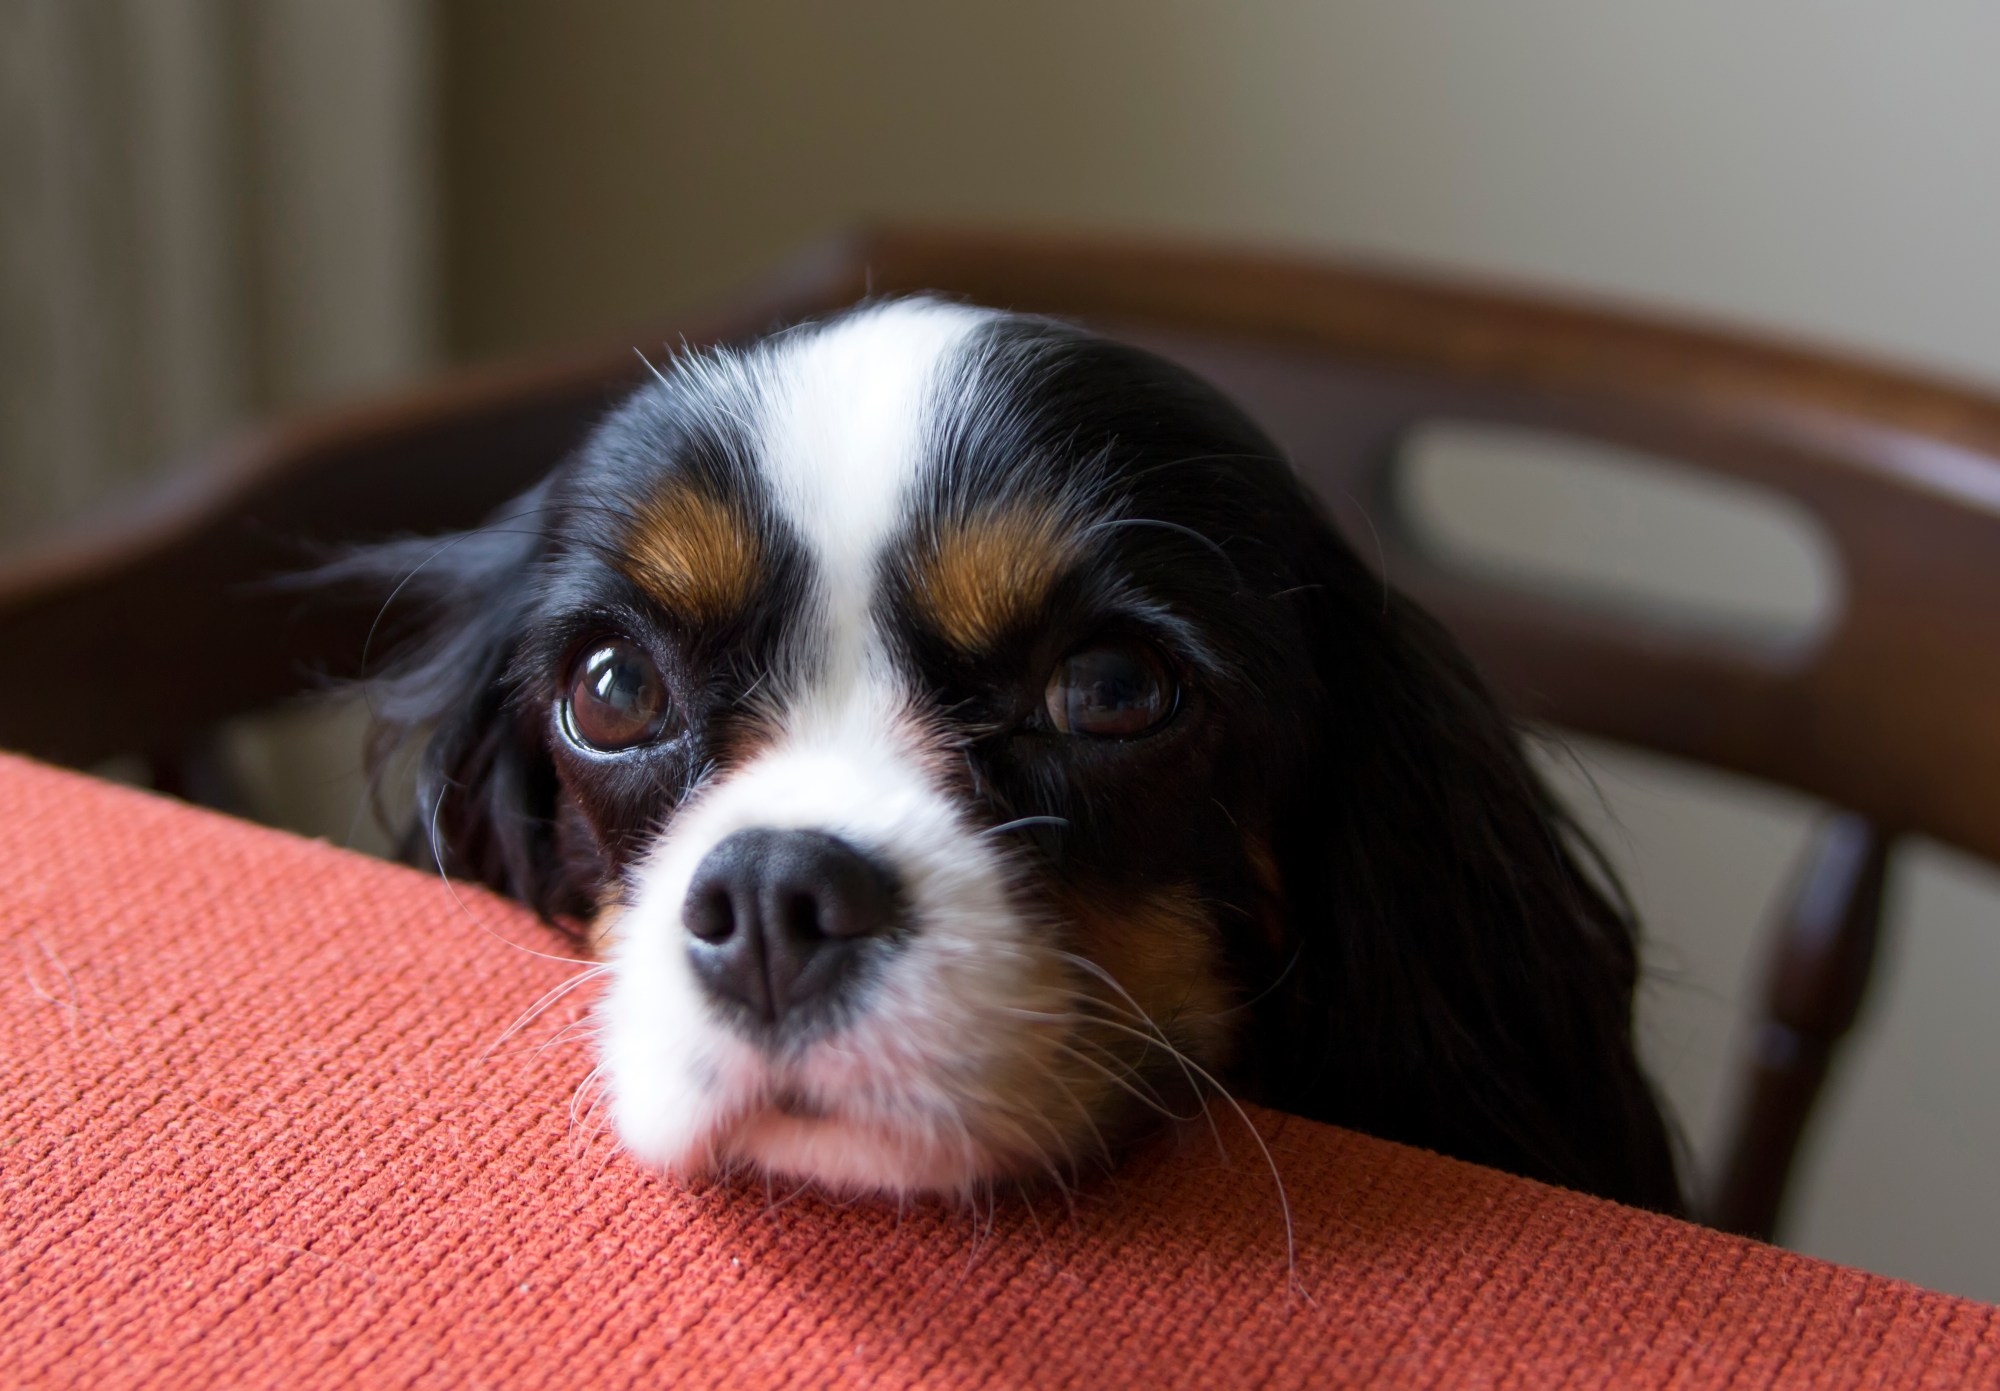 A cute dog begging for food at the table is seen in this file photo. (Credit: iStock / Getty Images Plus)